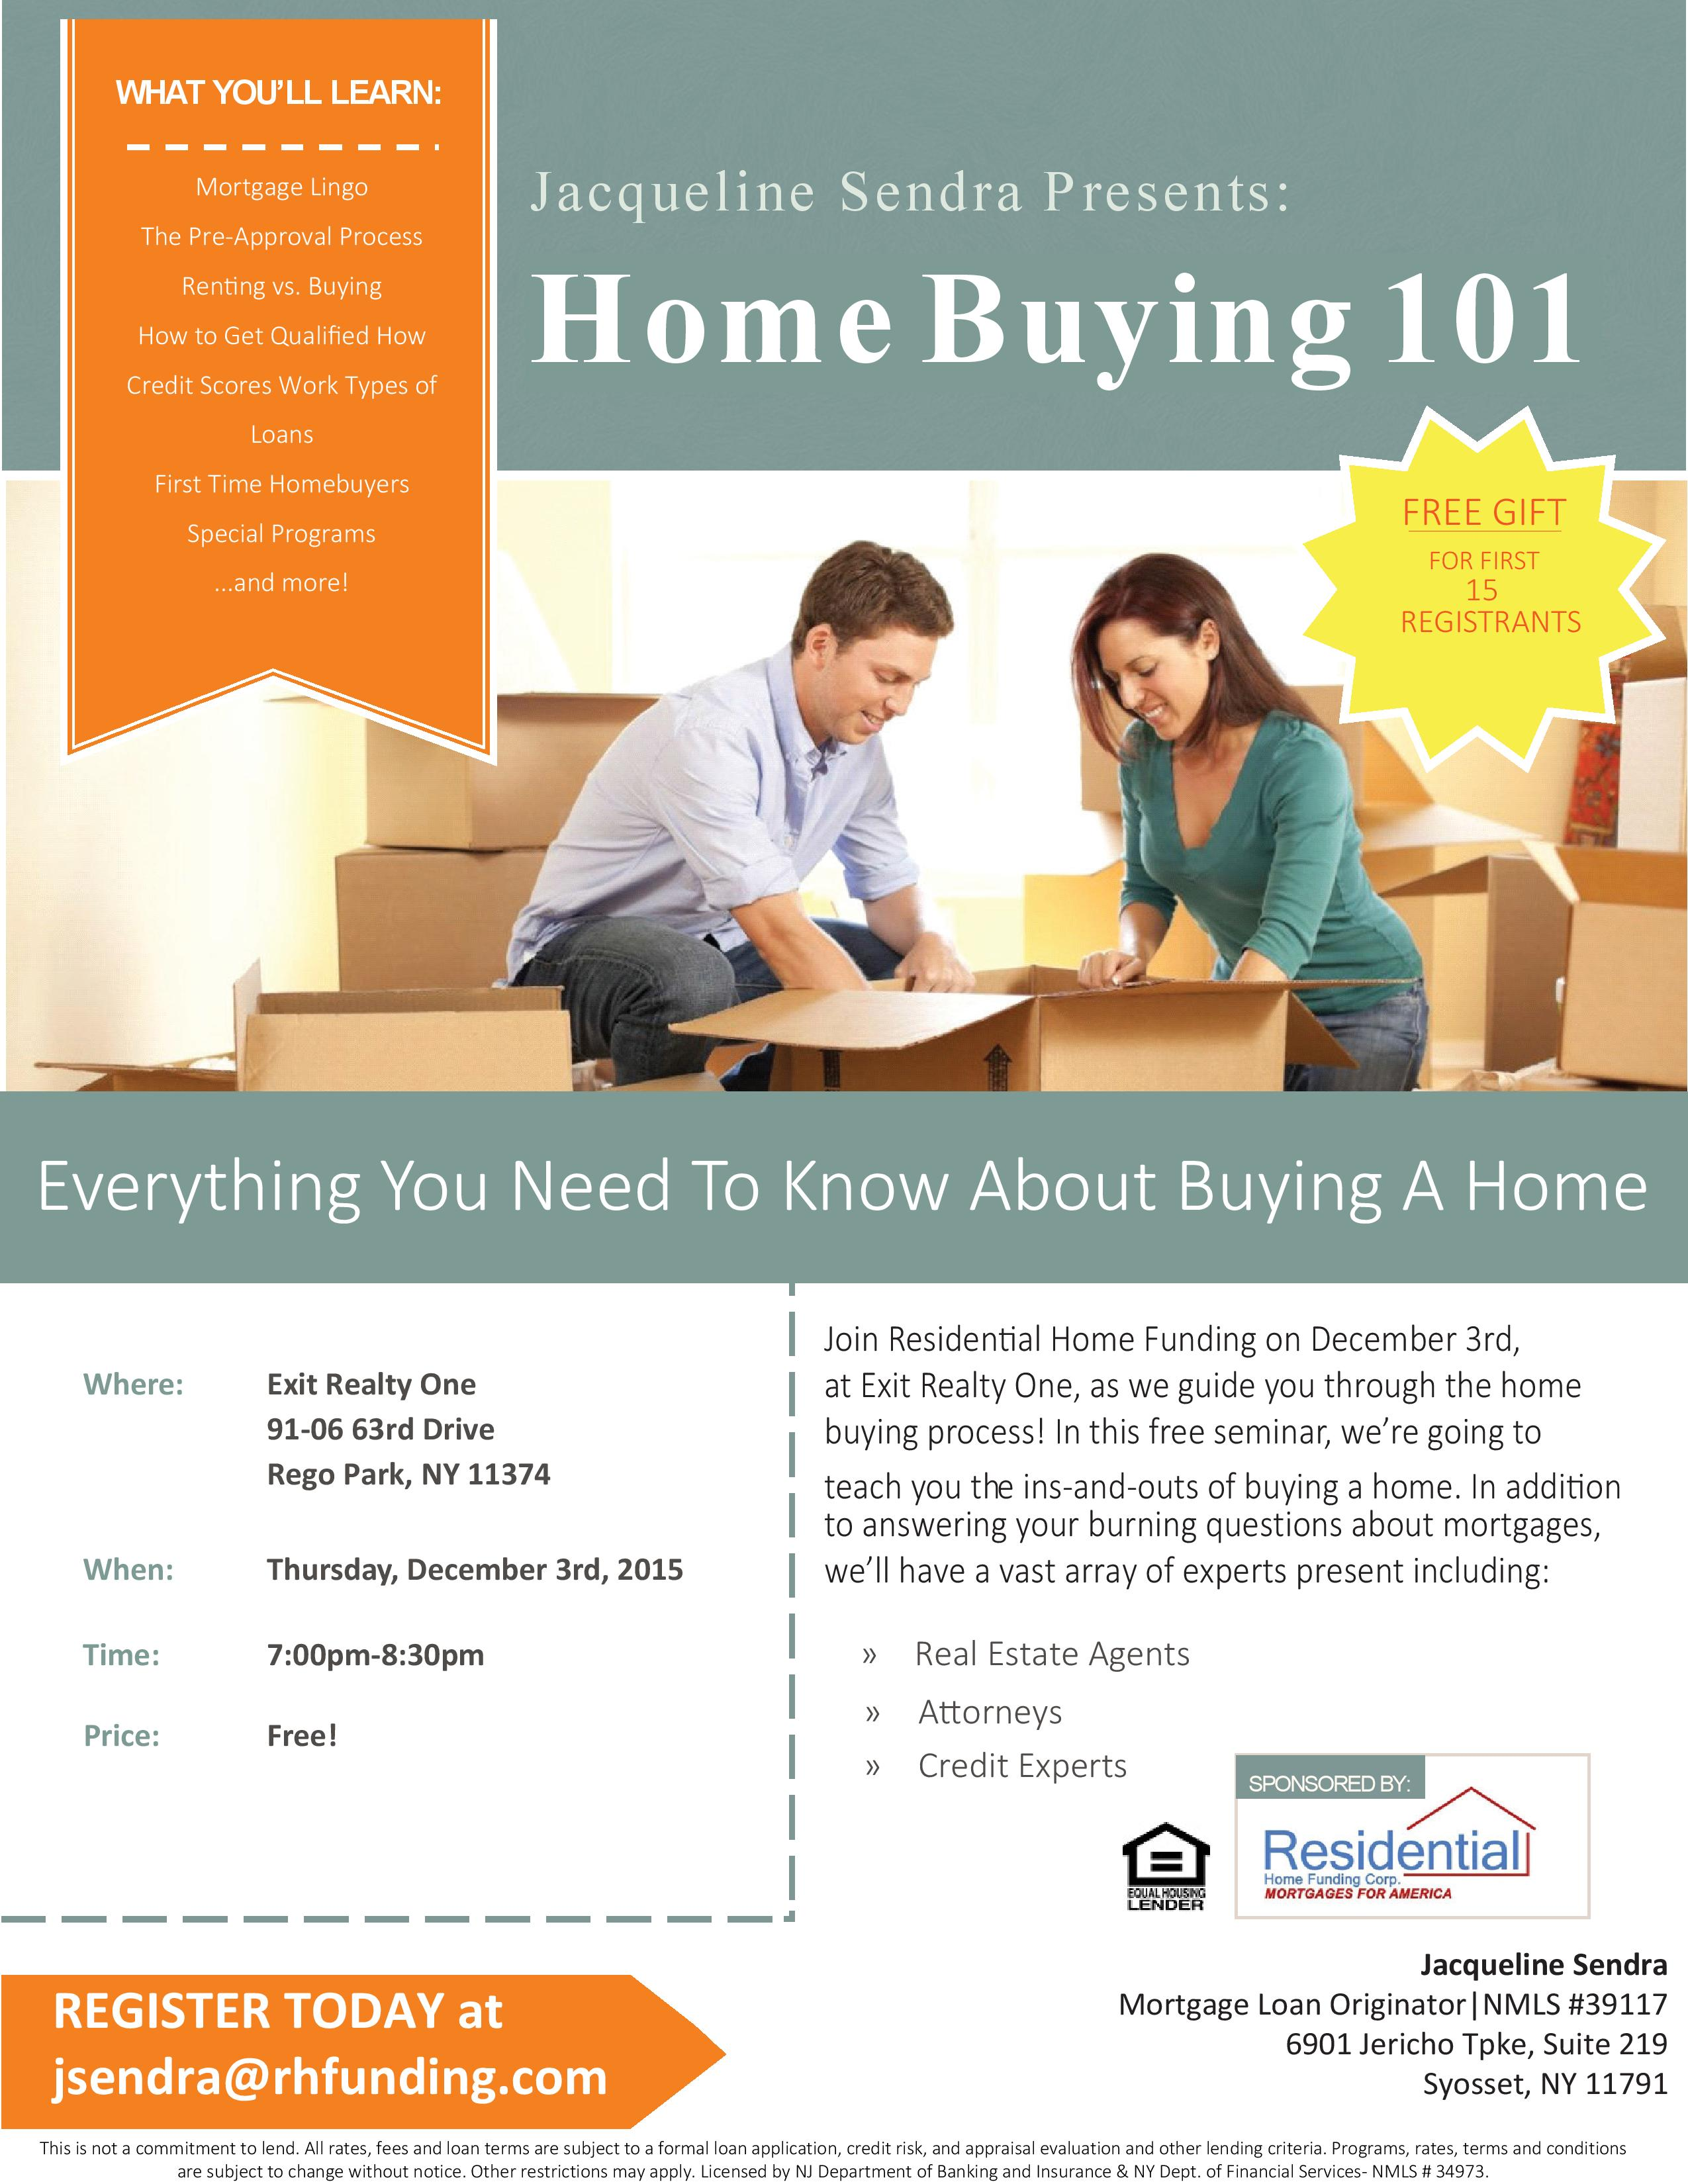 Nassau County First Time Home Buyer